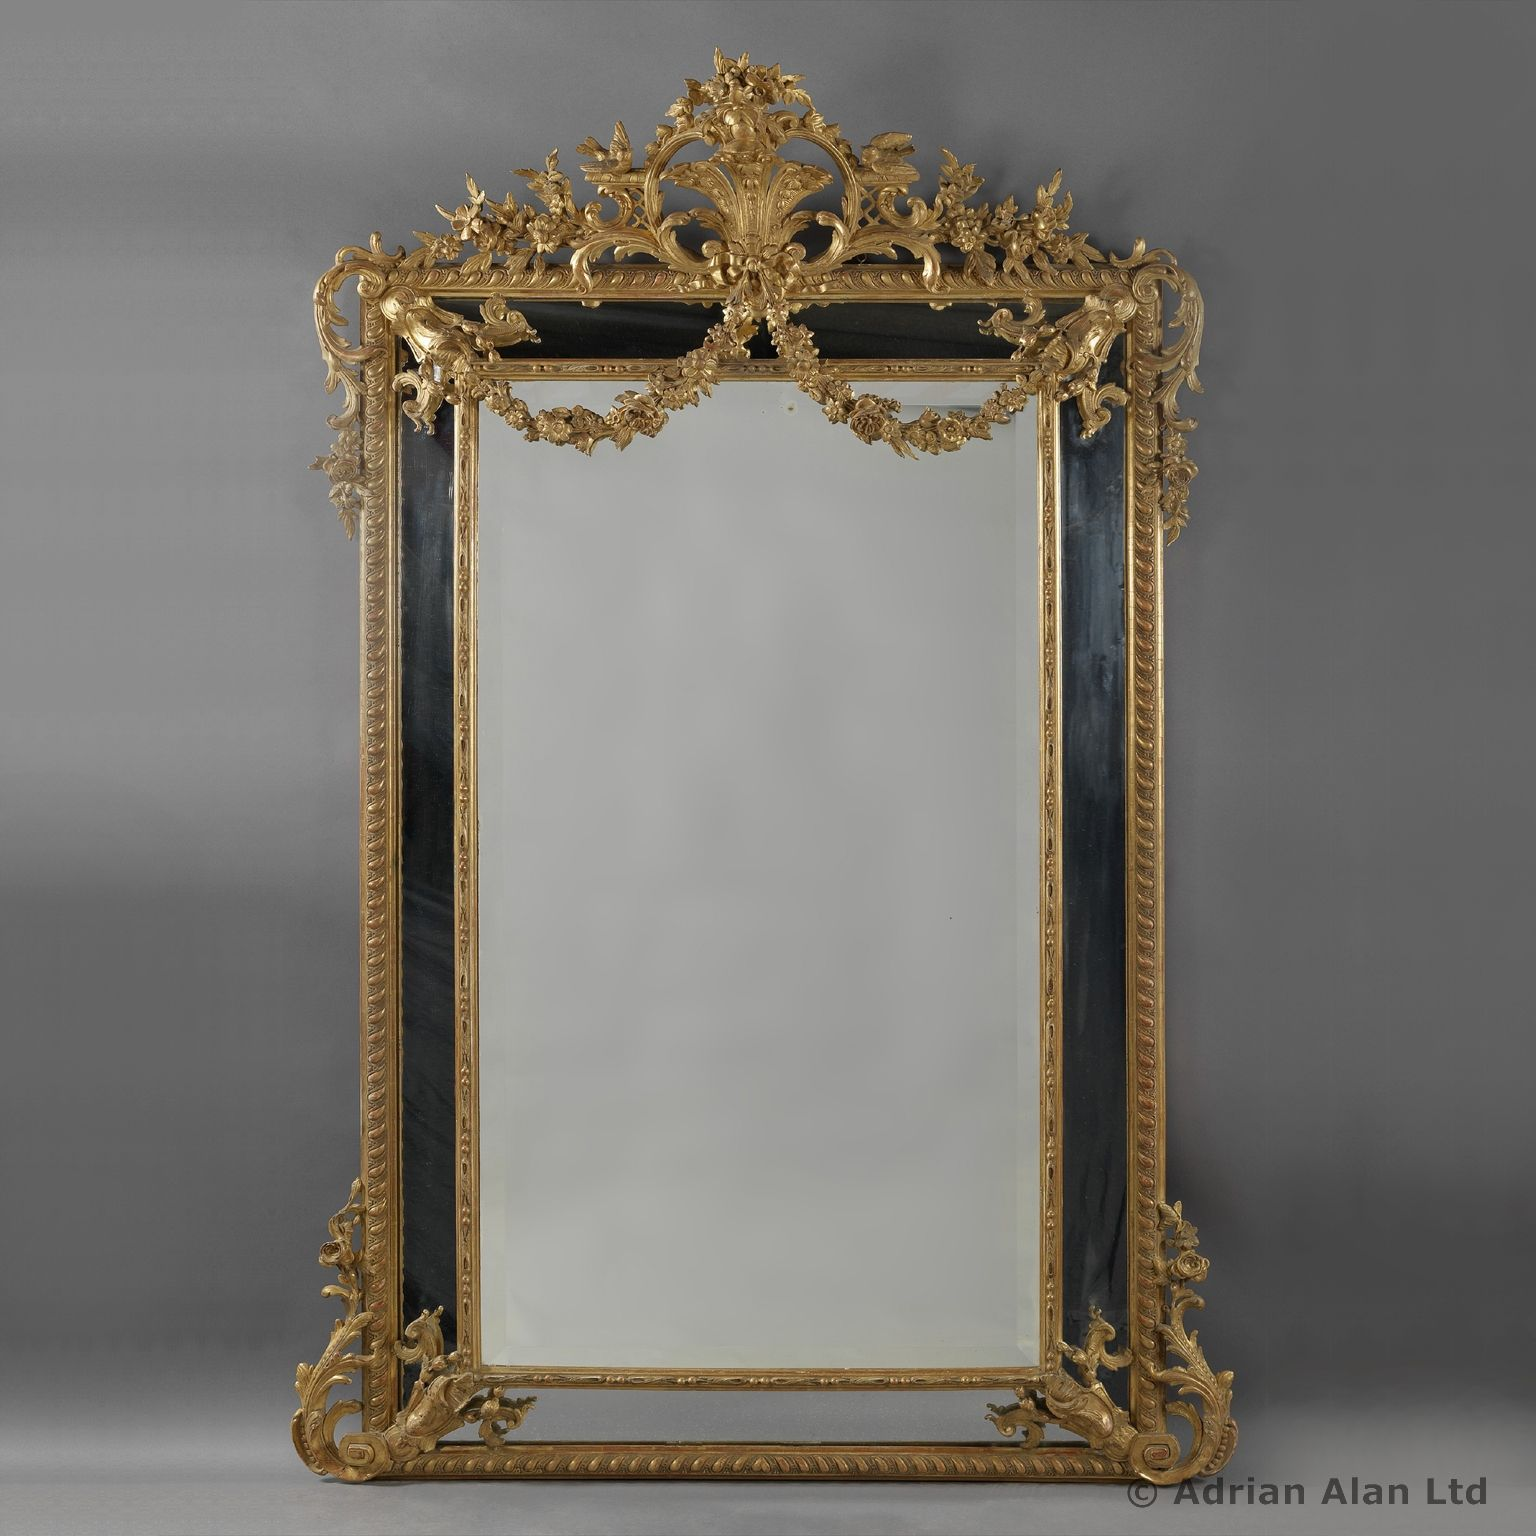 A Large and Finely Carved Louis XVI Style Marginal Frame Giltwood Mirror  - #adrianalan